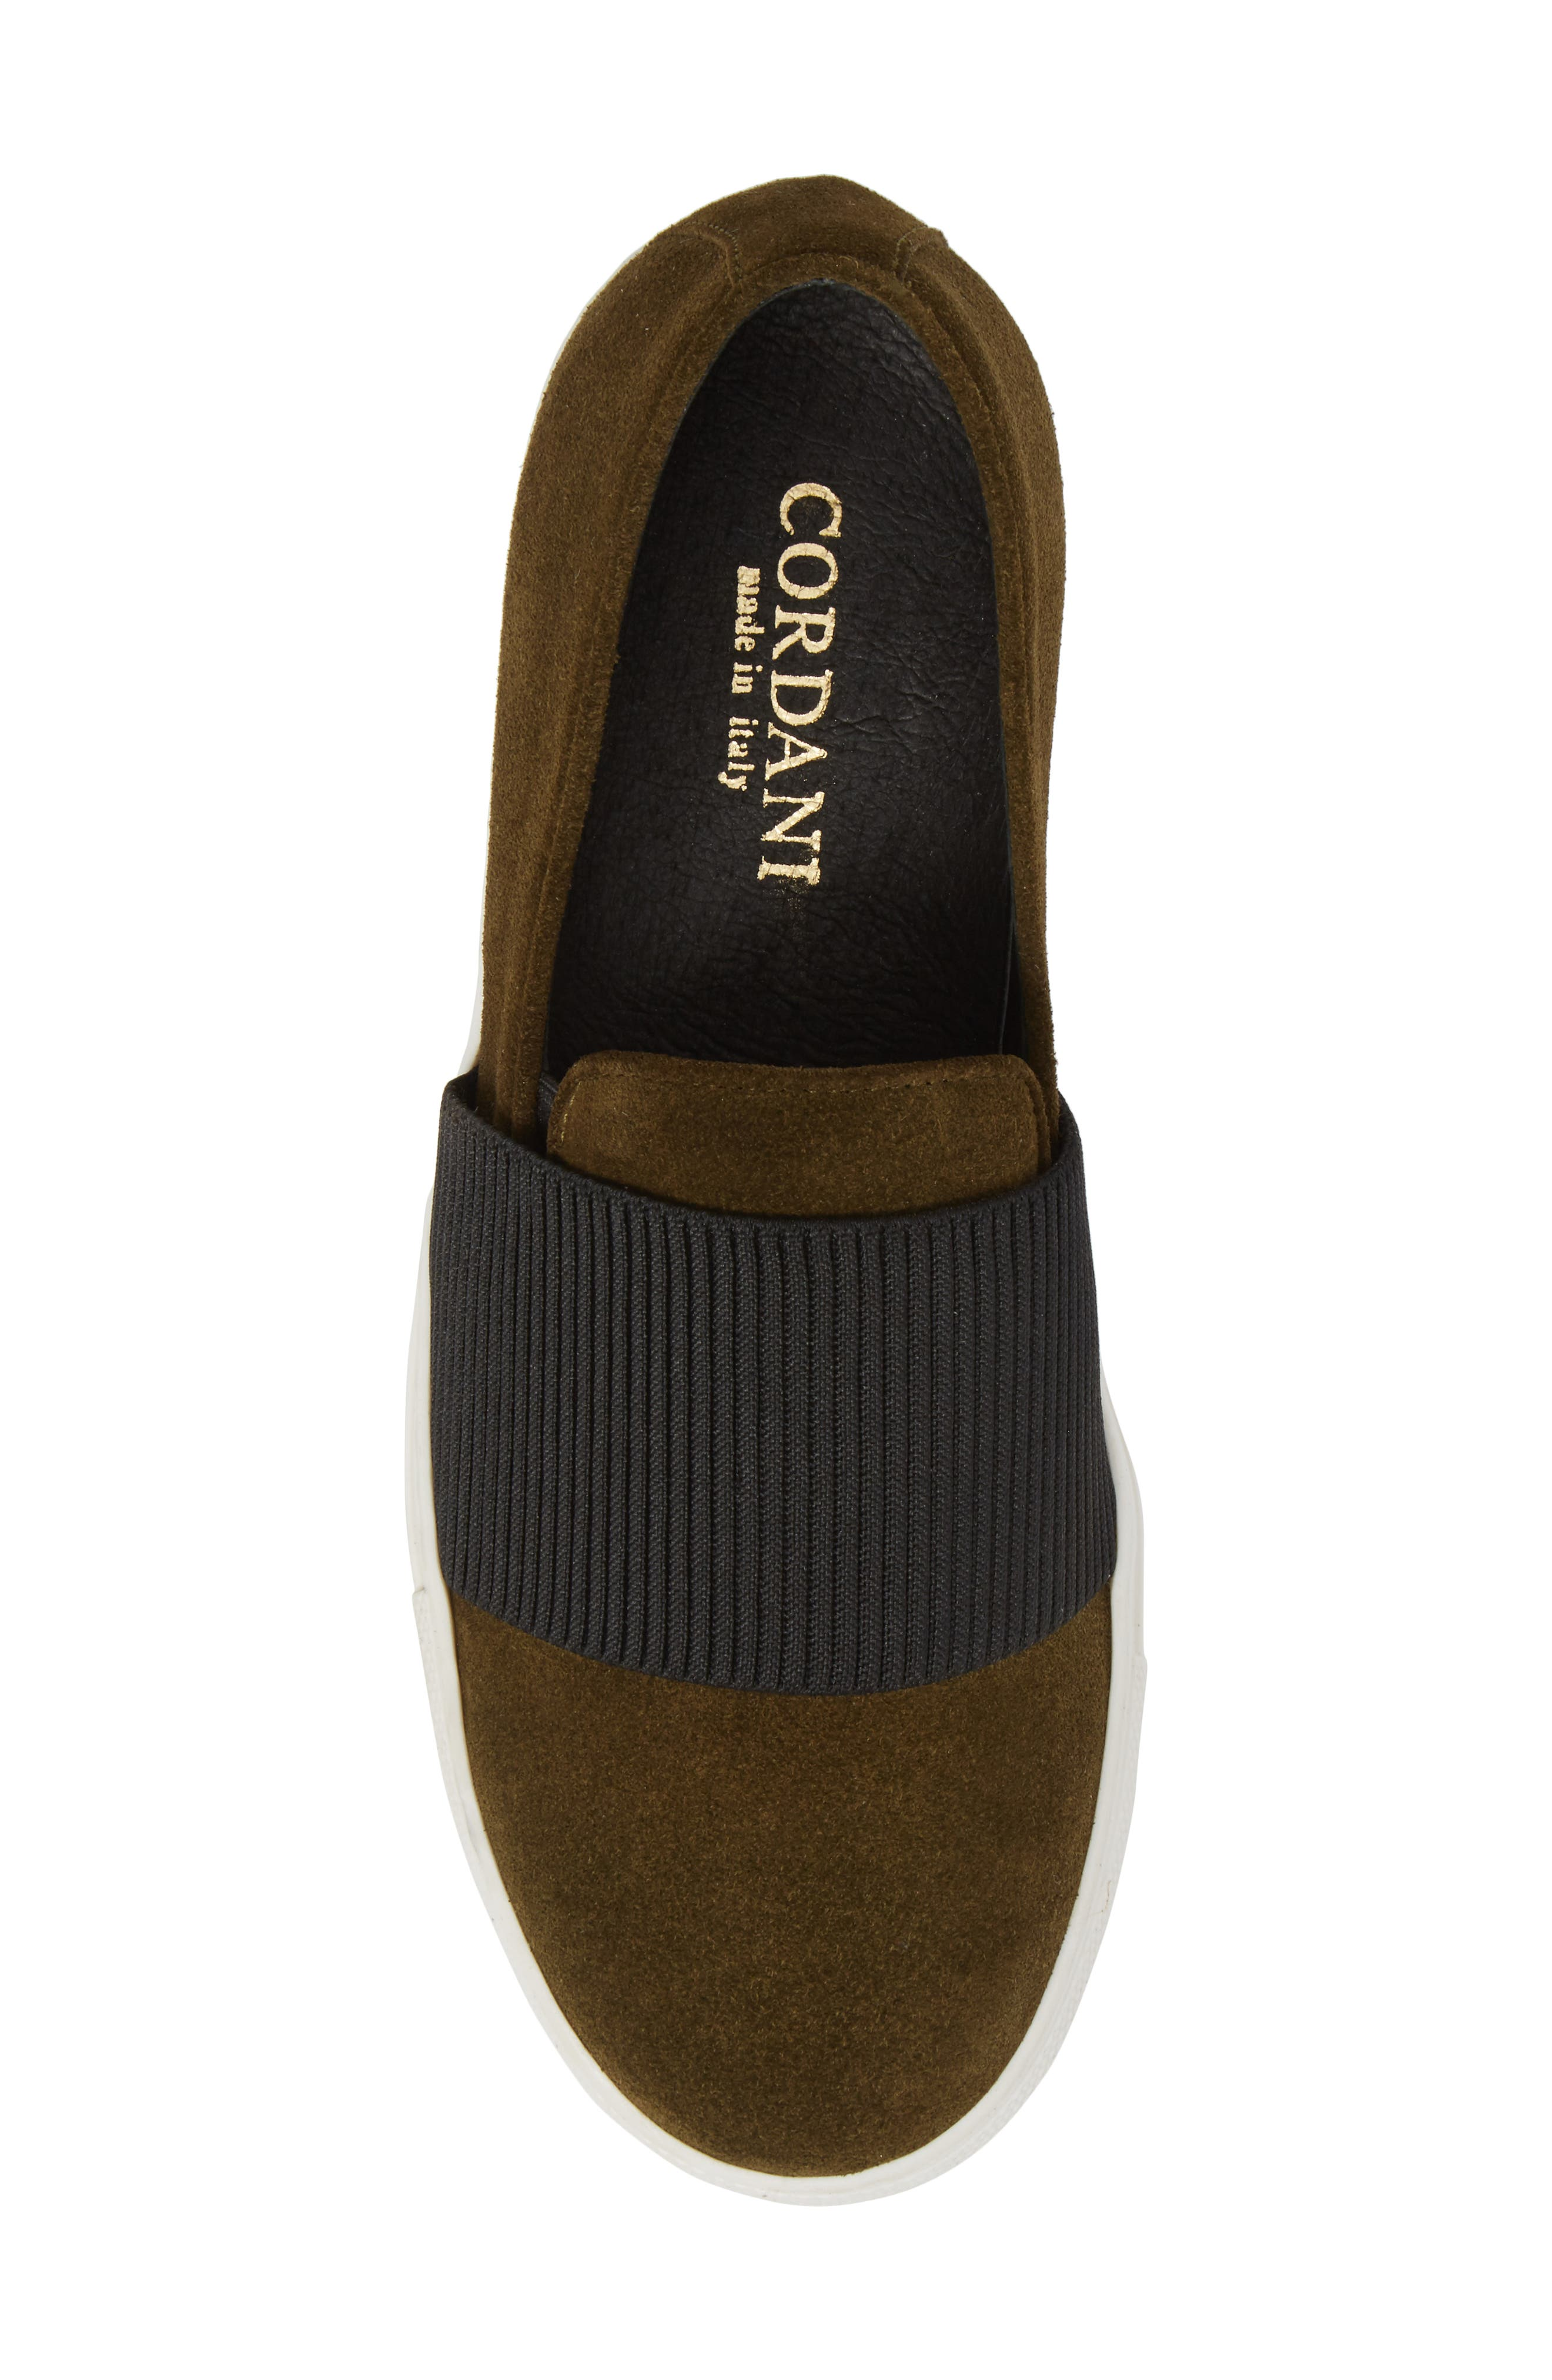 Otto Slip-On Sneaker,                             Alternate thumbnail 5, color,                             MILITARY PRINT SUEDE